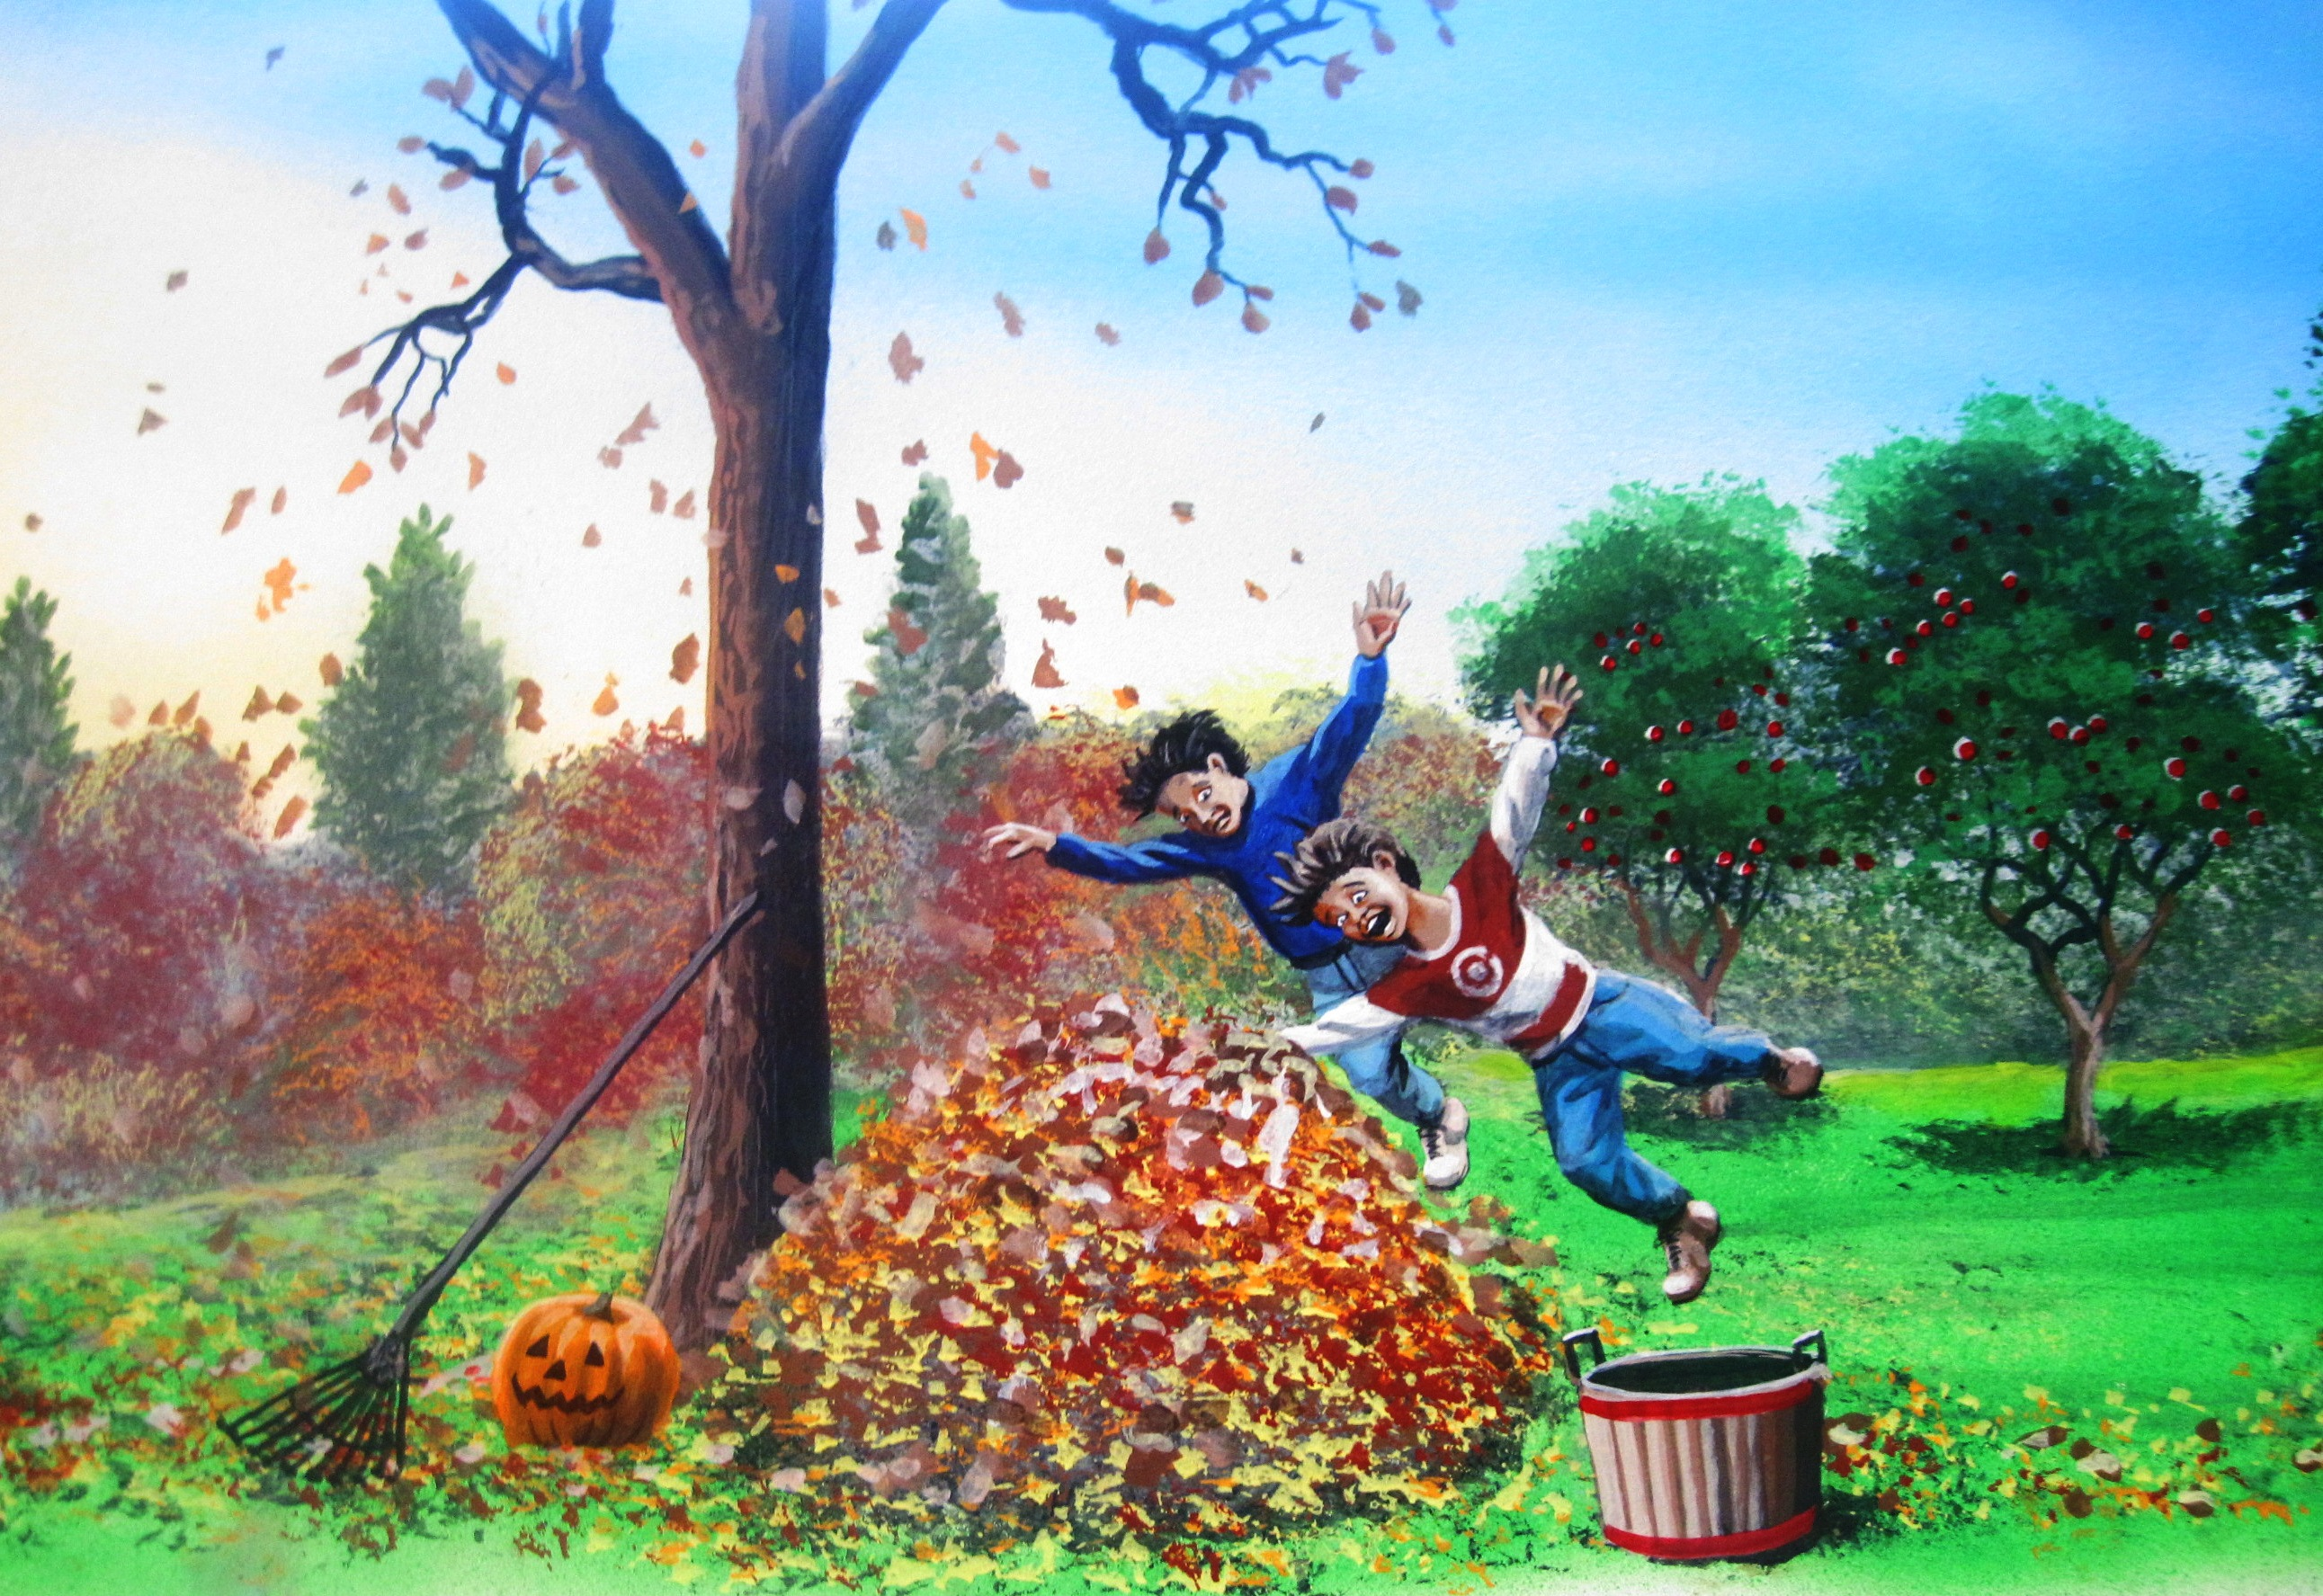 Evanston-School-autumn-leaves-mural-Paul-Barker-Googleplex